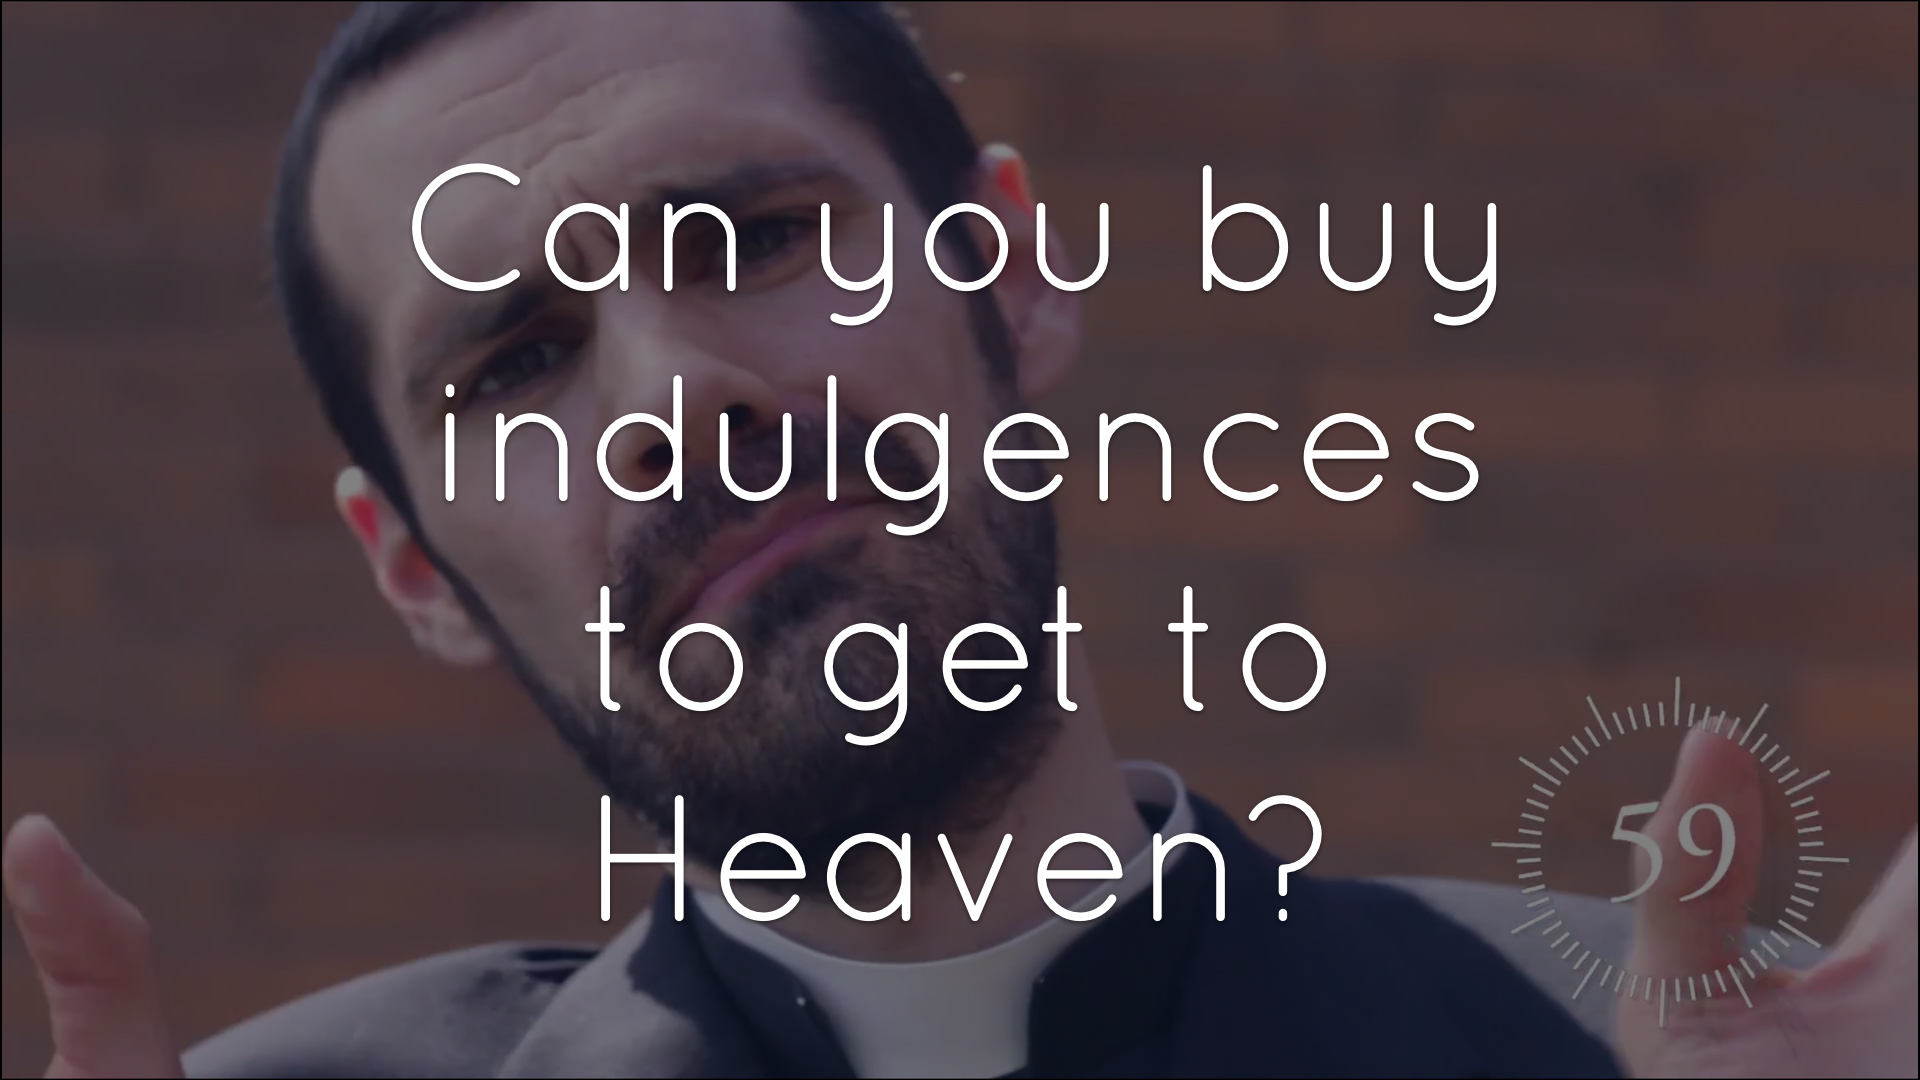 Can you buy indulgences to get to Heaven?